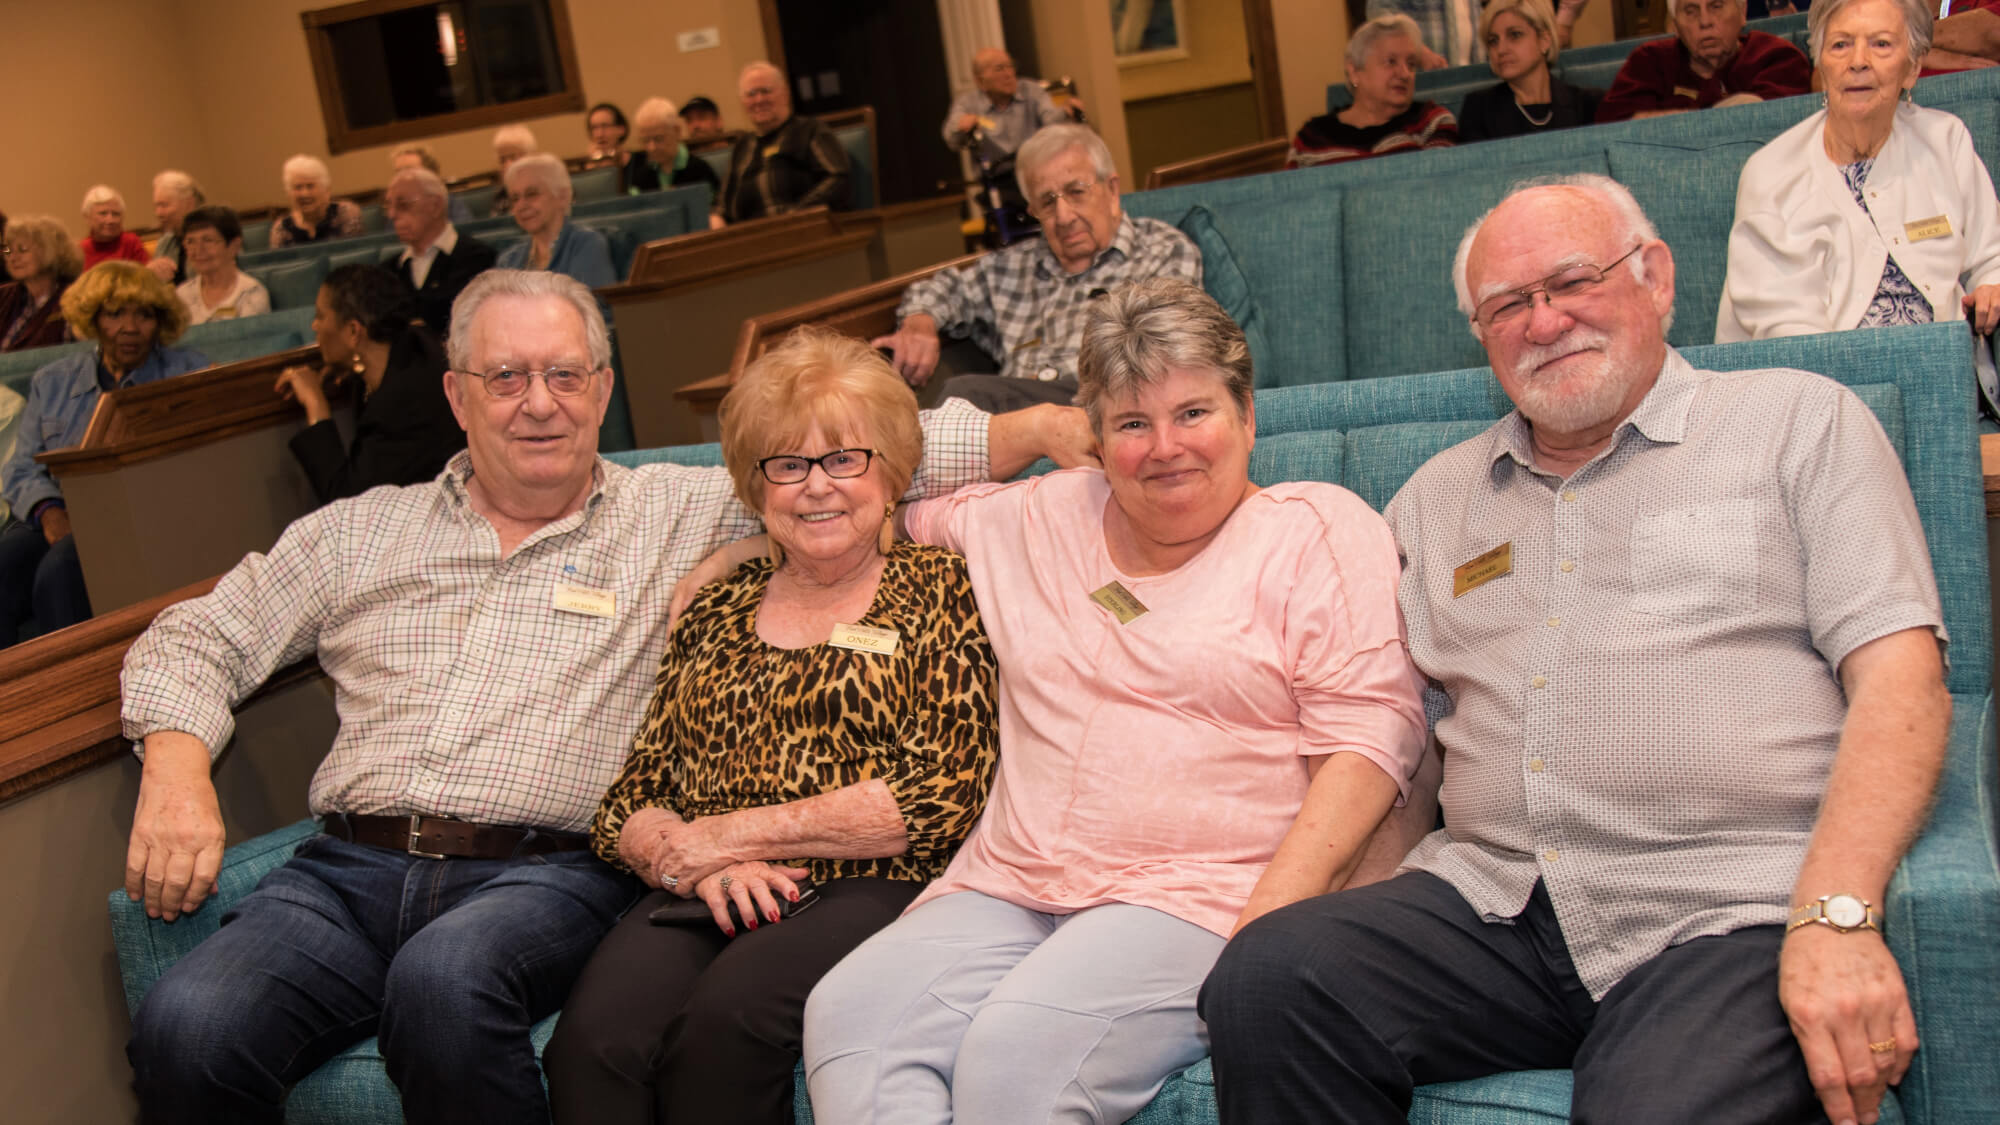 Enjoying ourselves in the theater at Vickery Rose.